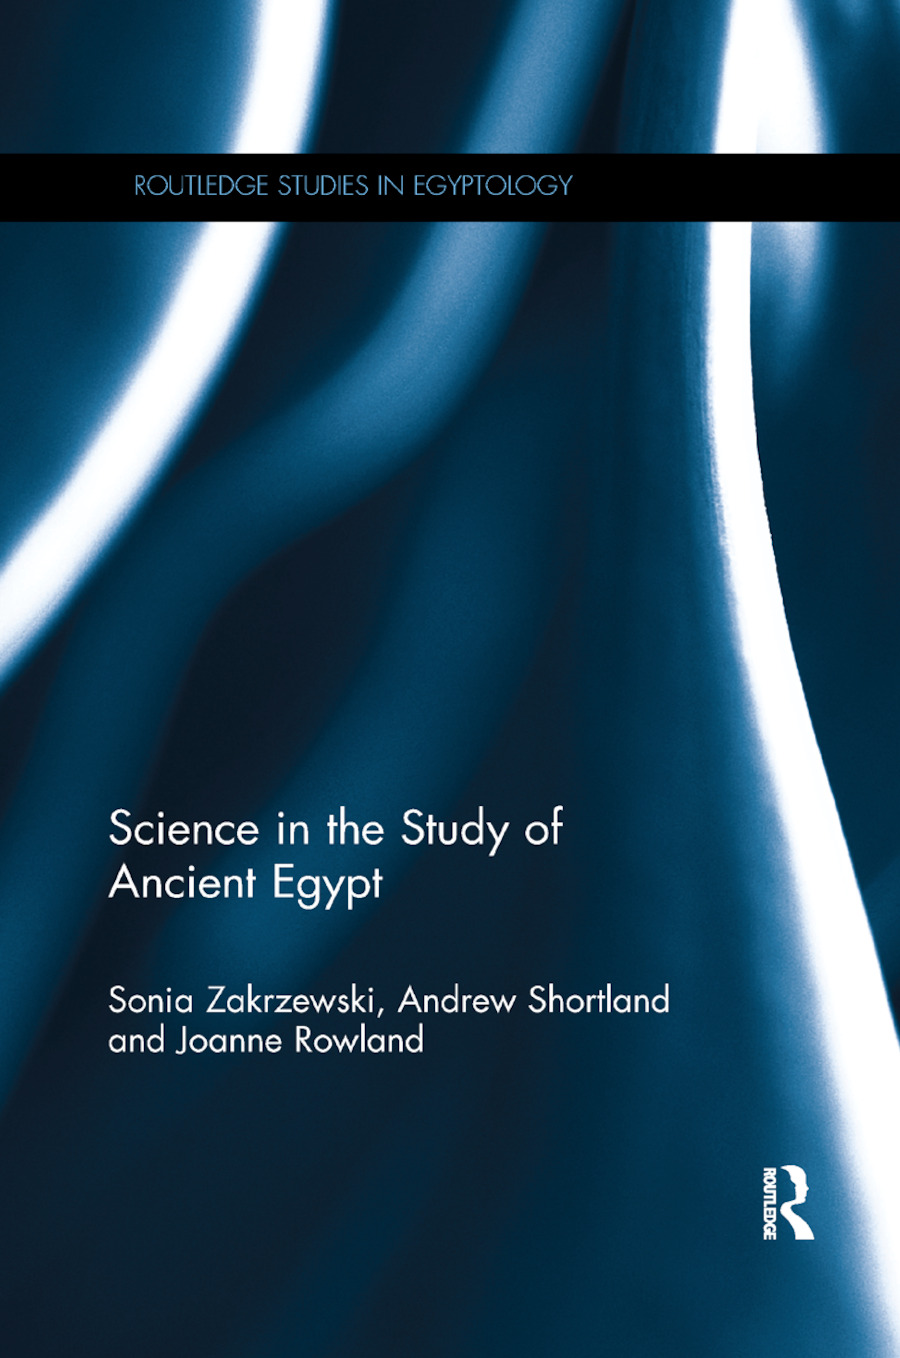 Science in the Study of Ancient Egypt